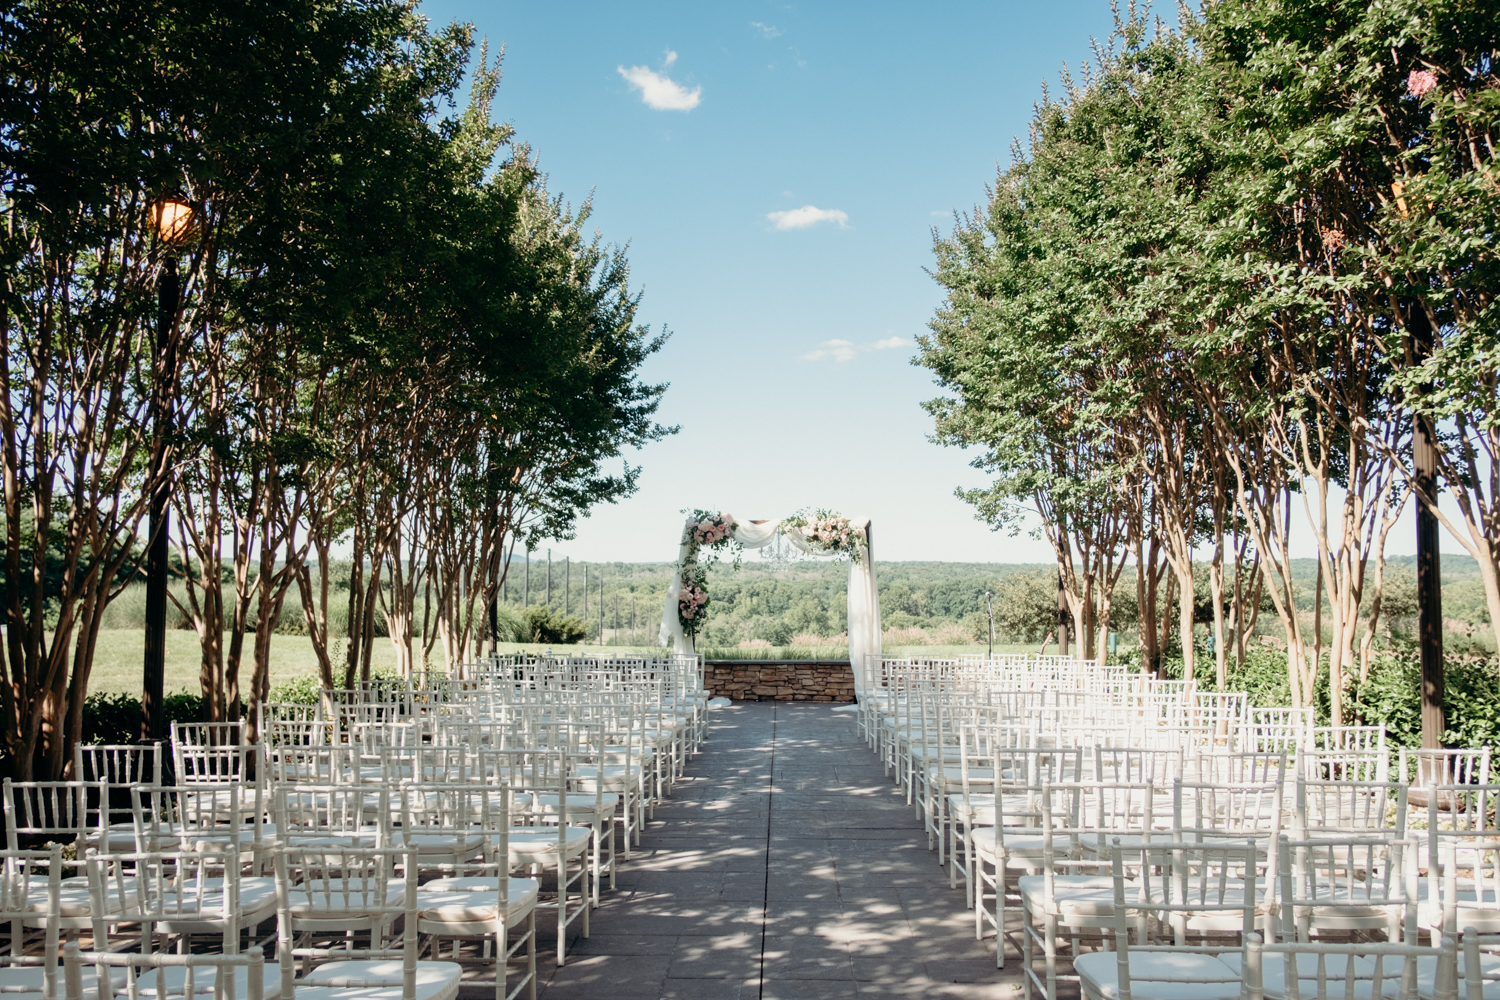 Rows of white chairs with a center aisle leads up to an arbor decorated with while fabric and flowers for a wedding at Lansdowne Resort.